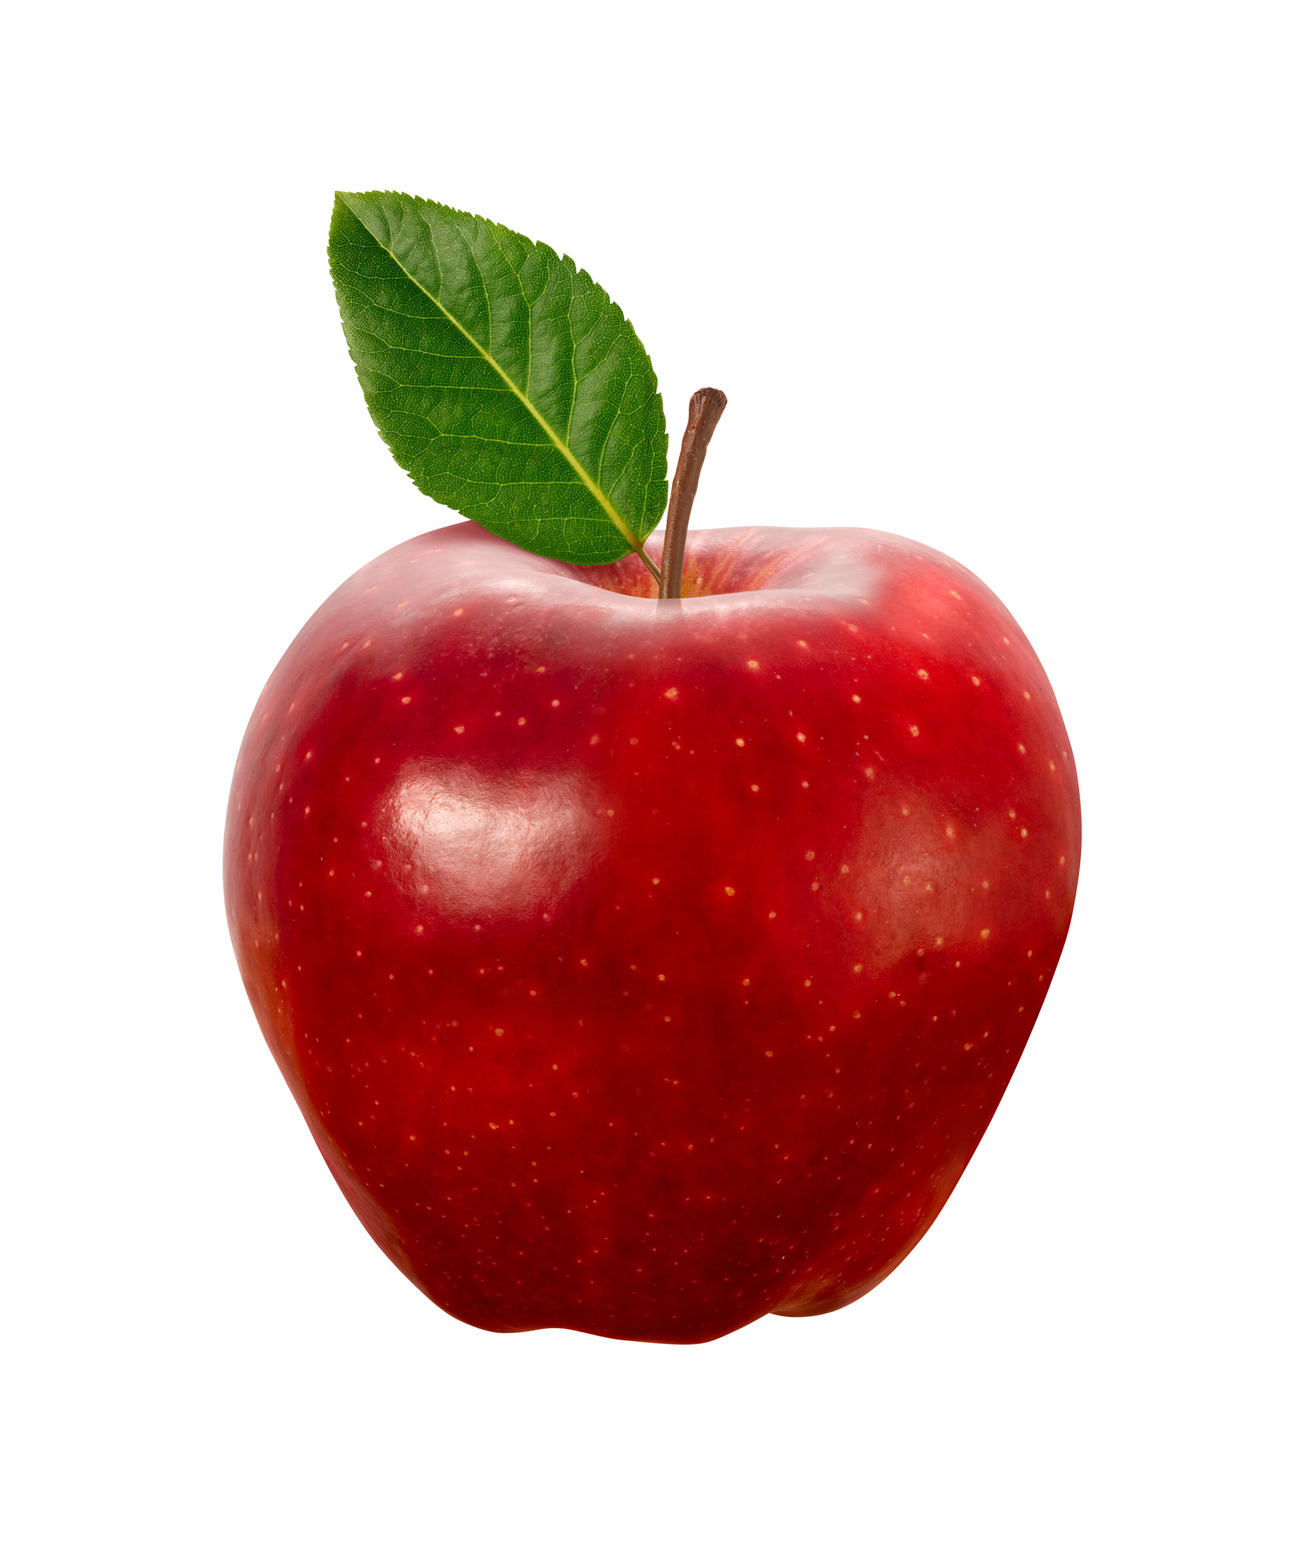 Apple High Quality Background on Wallpapers Vista